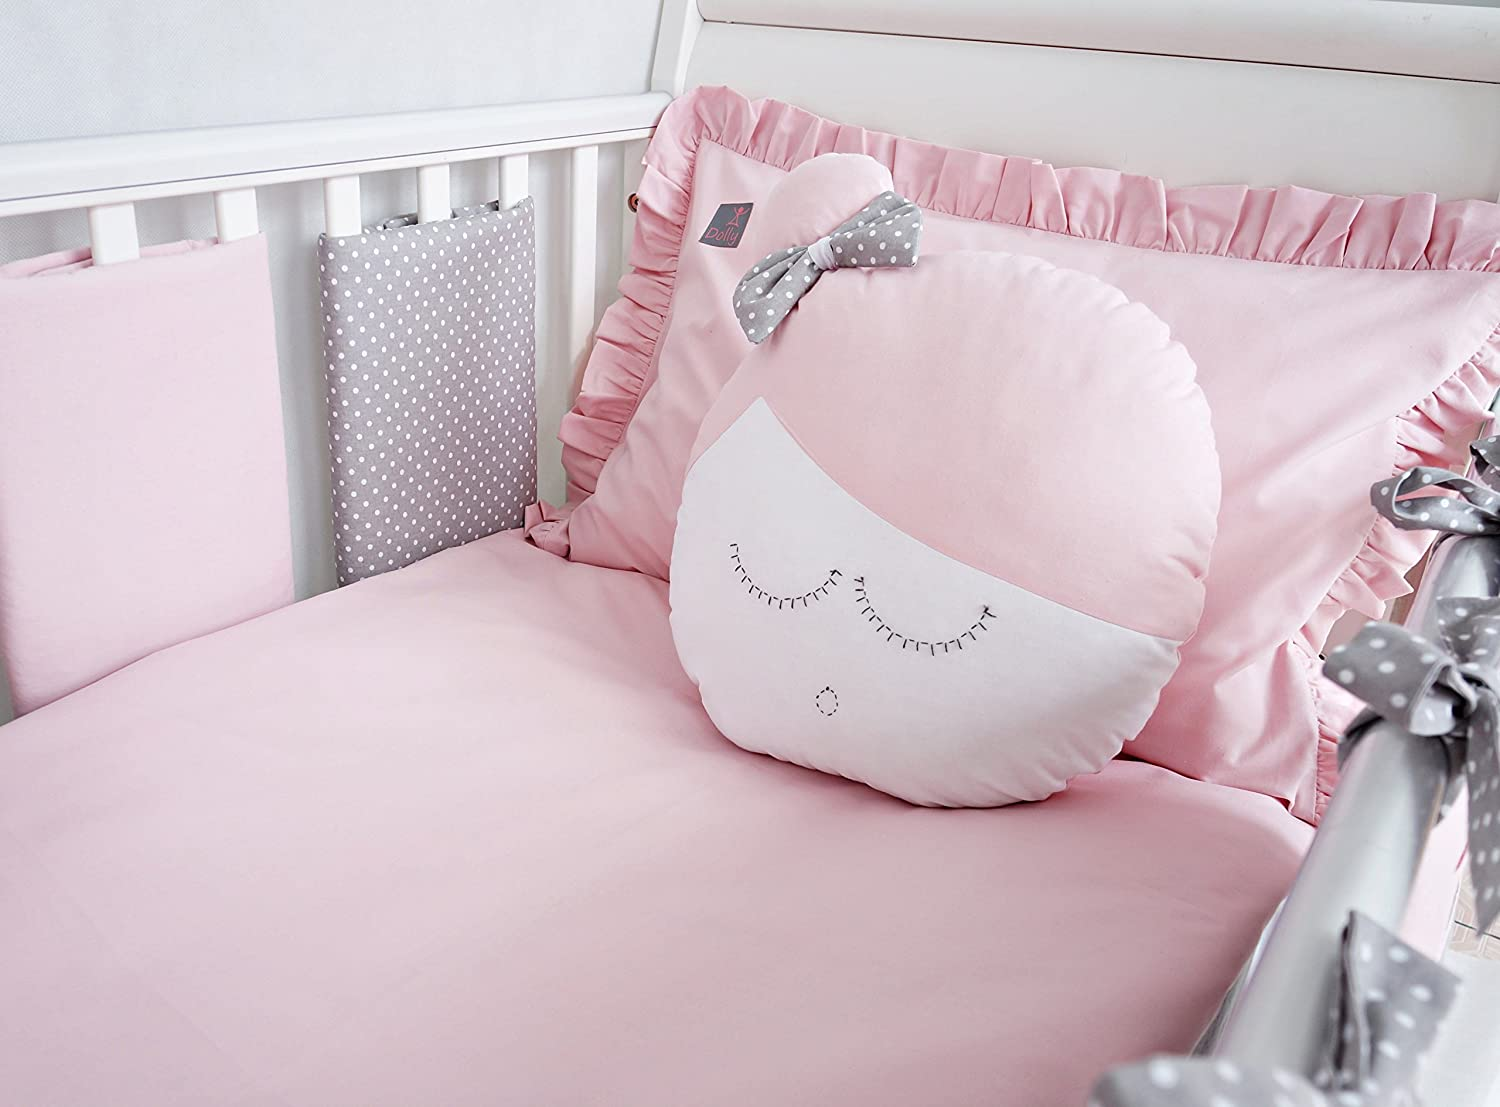 **NEW LUXURY & EXCLUSIVE POWDER PINK & GREY POLKA DOT BABY BEDDING SET - DUVET SET 100x135cm, 8 COT BAR BUMPERS, COT TIDY, DOLLY CUSHION to fit cot or cot bed (please see dimensions in the description)